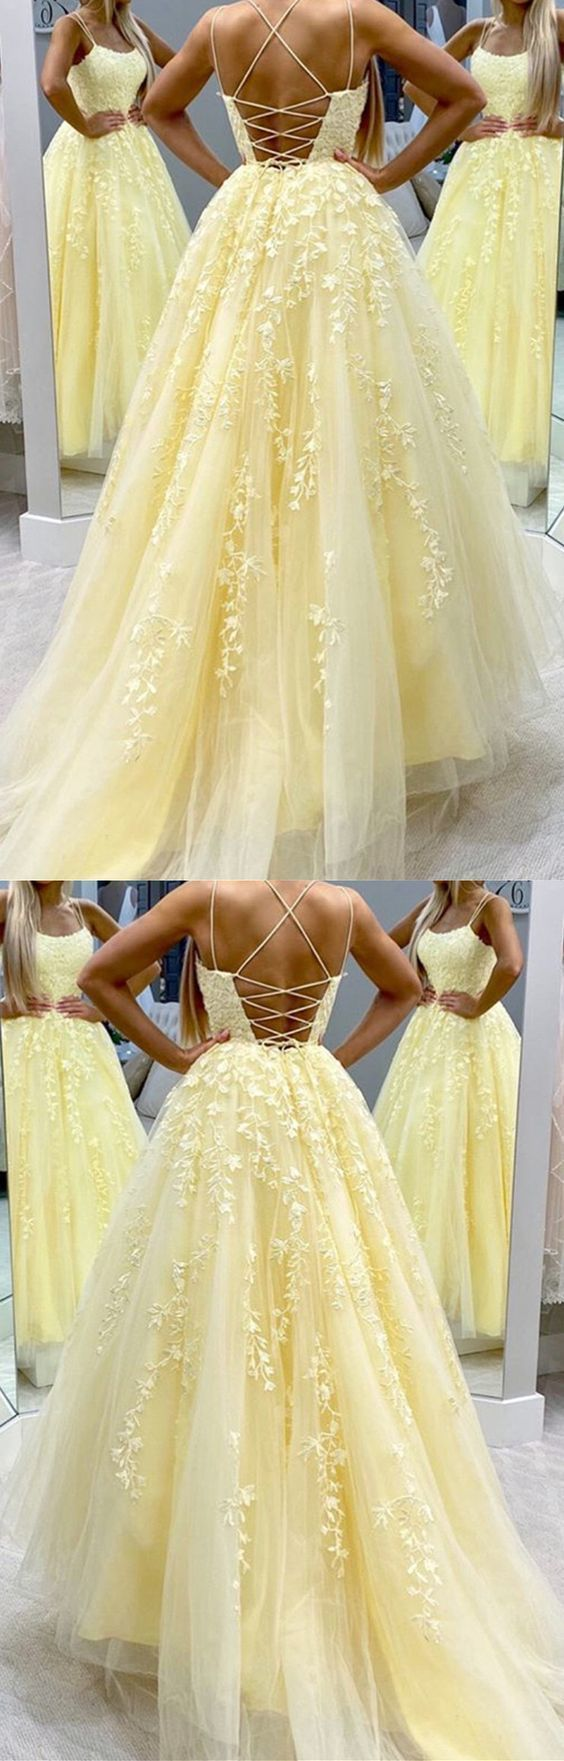 Elegant Tulle Prom Dresses Yellow Ball Gowns with Appliques